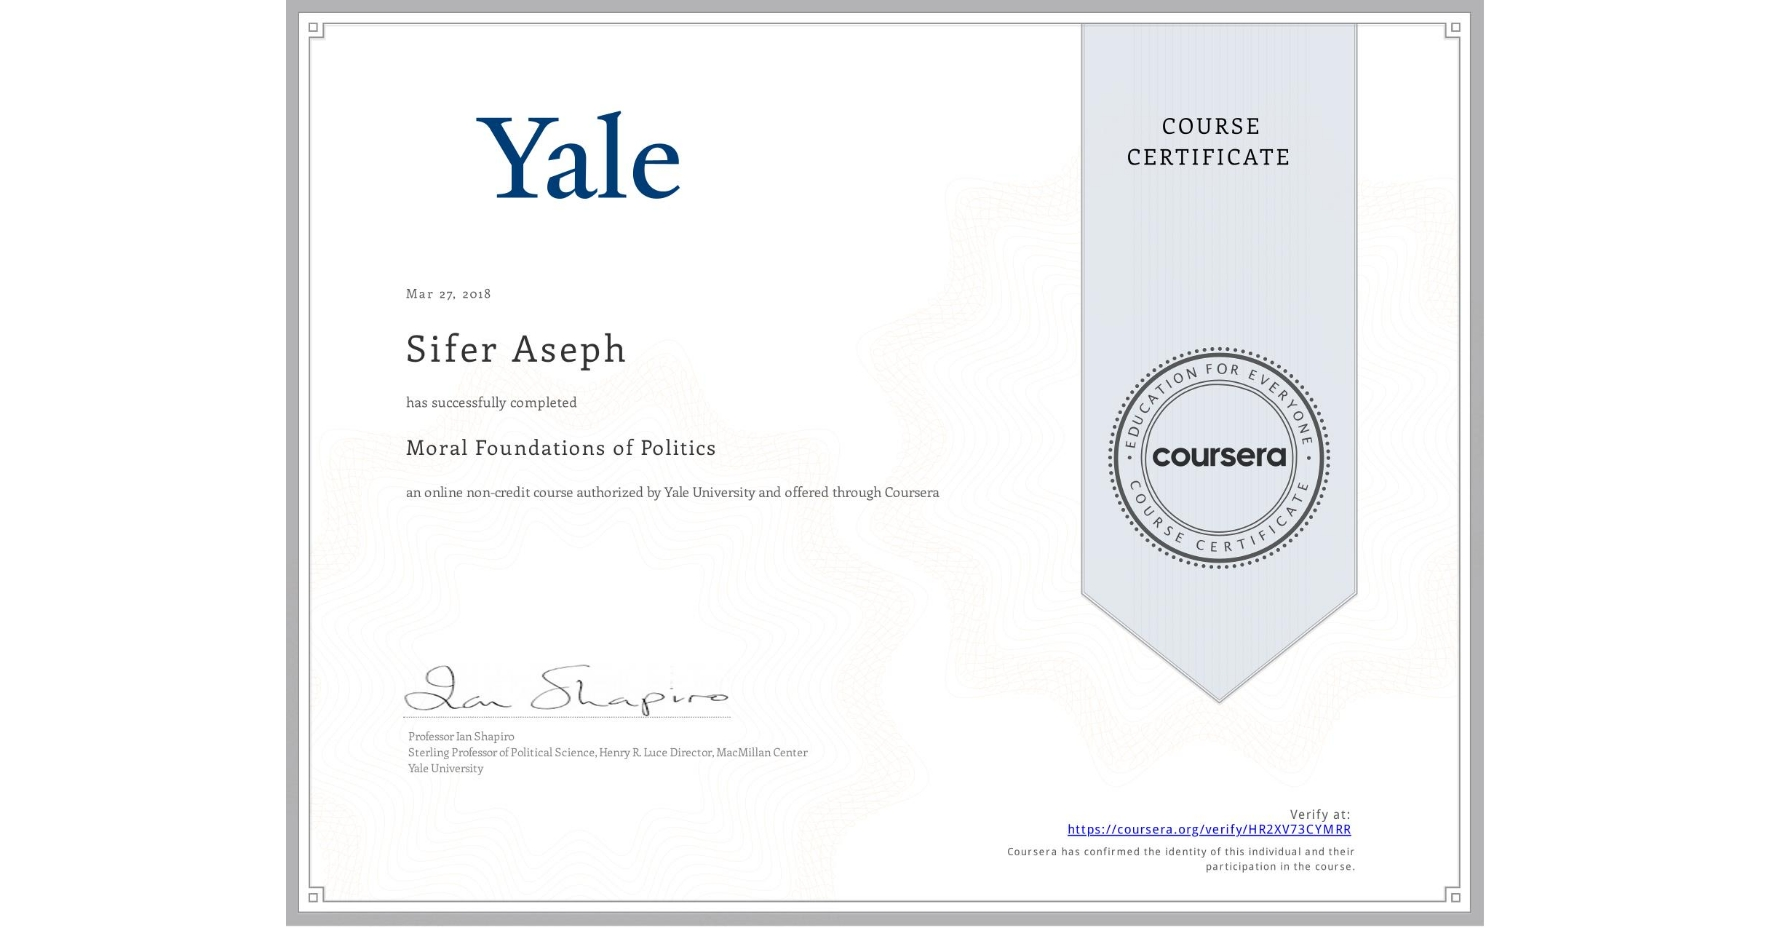 View certificate for Sifer Aseph, Moral Foundations of Politics , an online non-credit course authorized by Yale University and offered through Coursera